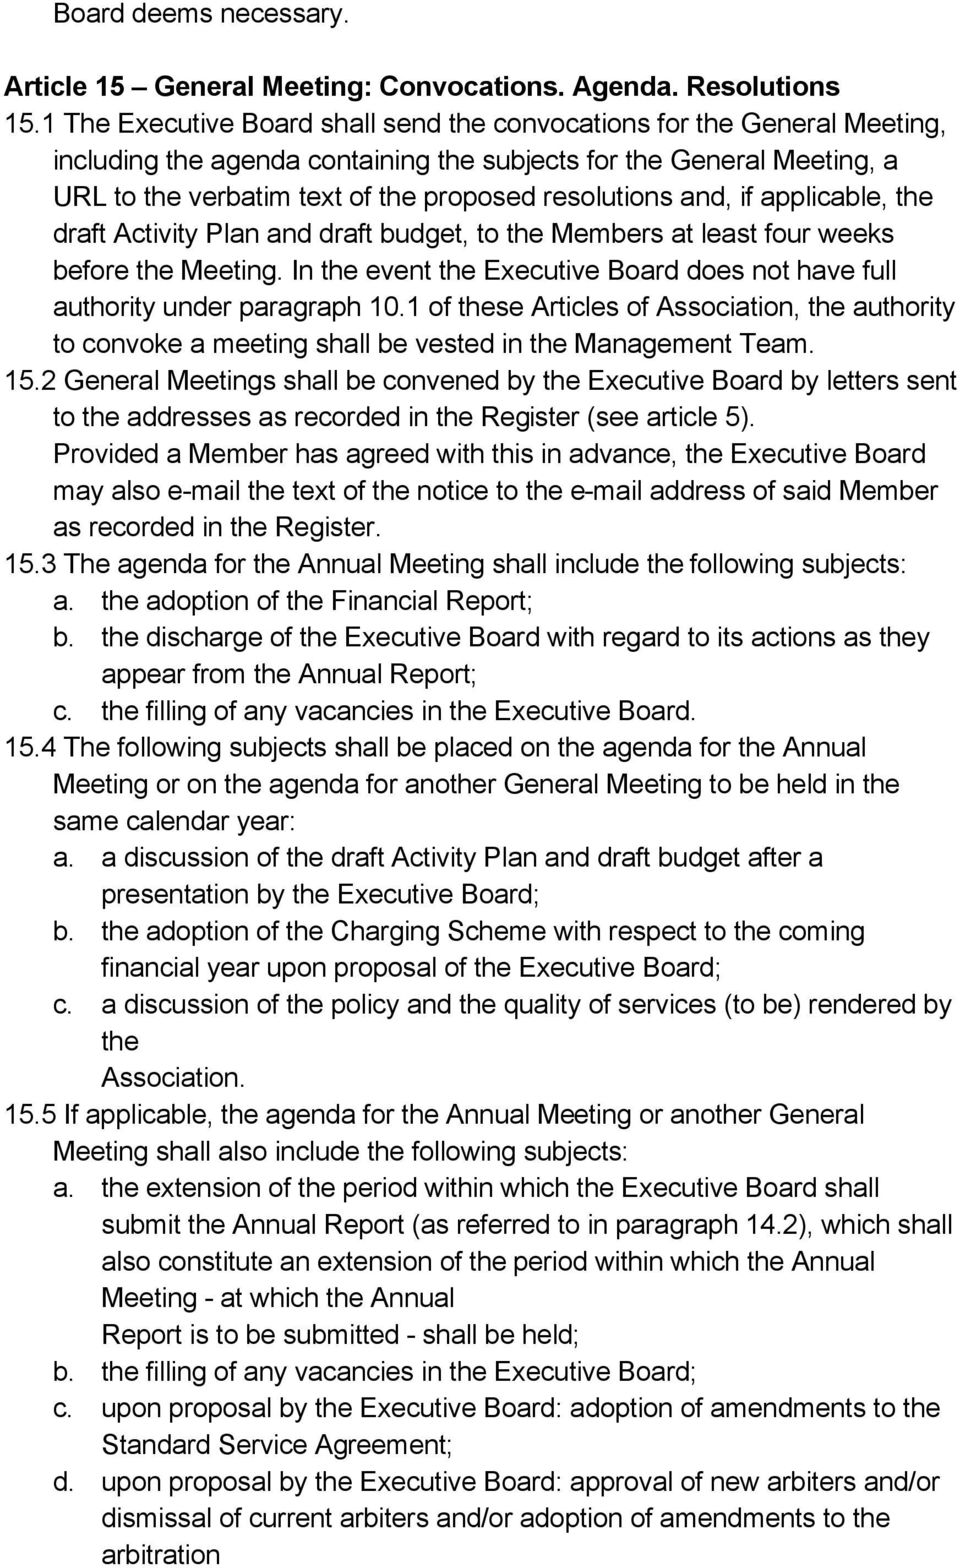 and, if applicable, the draft Activity Plan and draft budget, to the Members at least four weeks before the Meeting. In the event the Executive Board does not have full authority under paragraph 10.